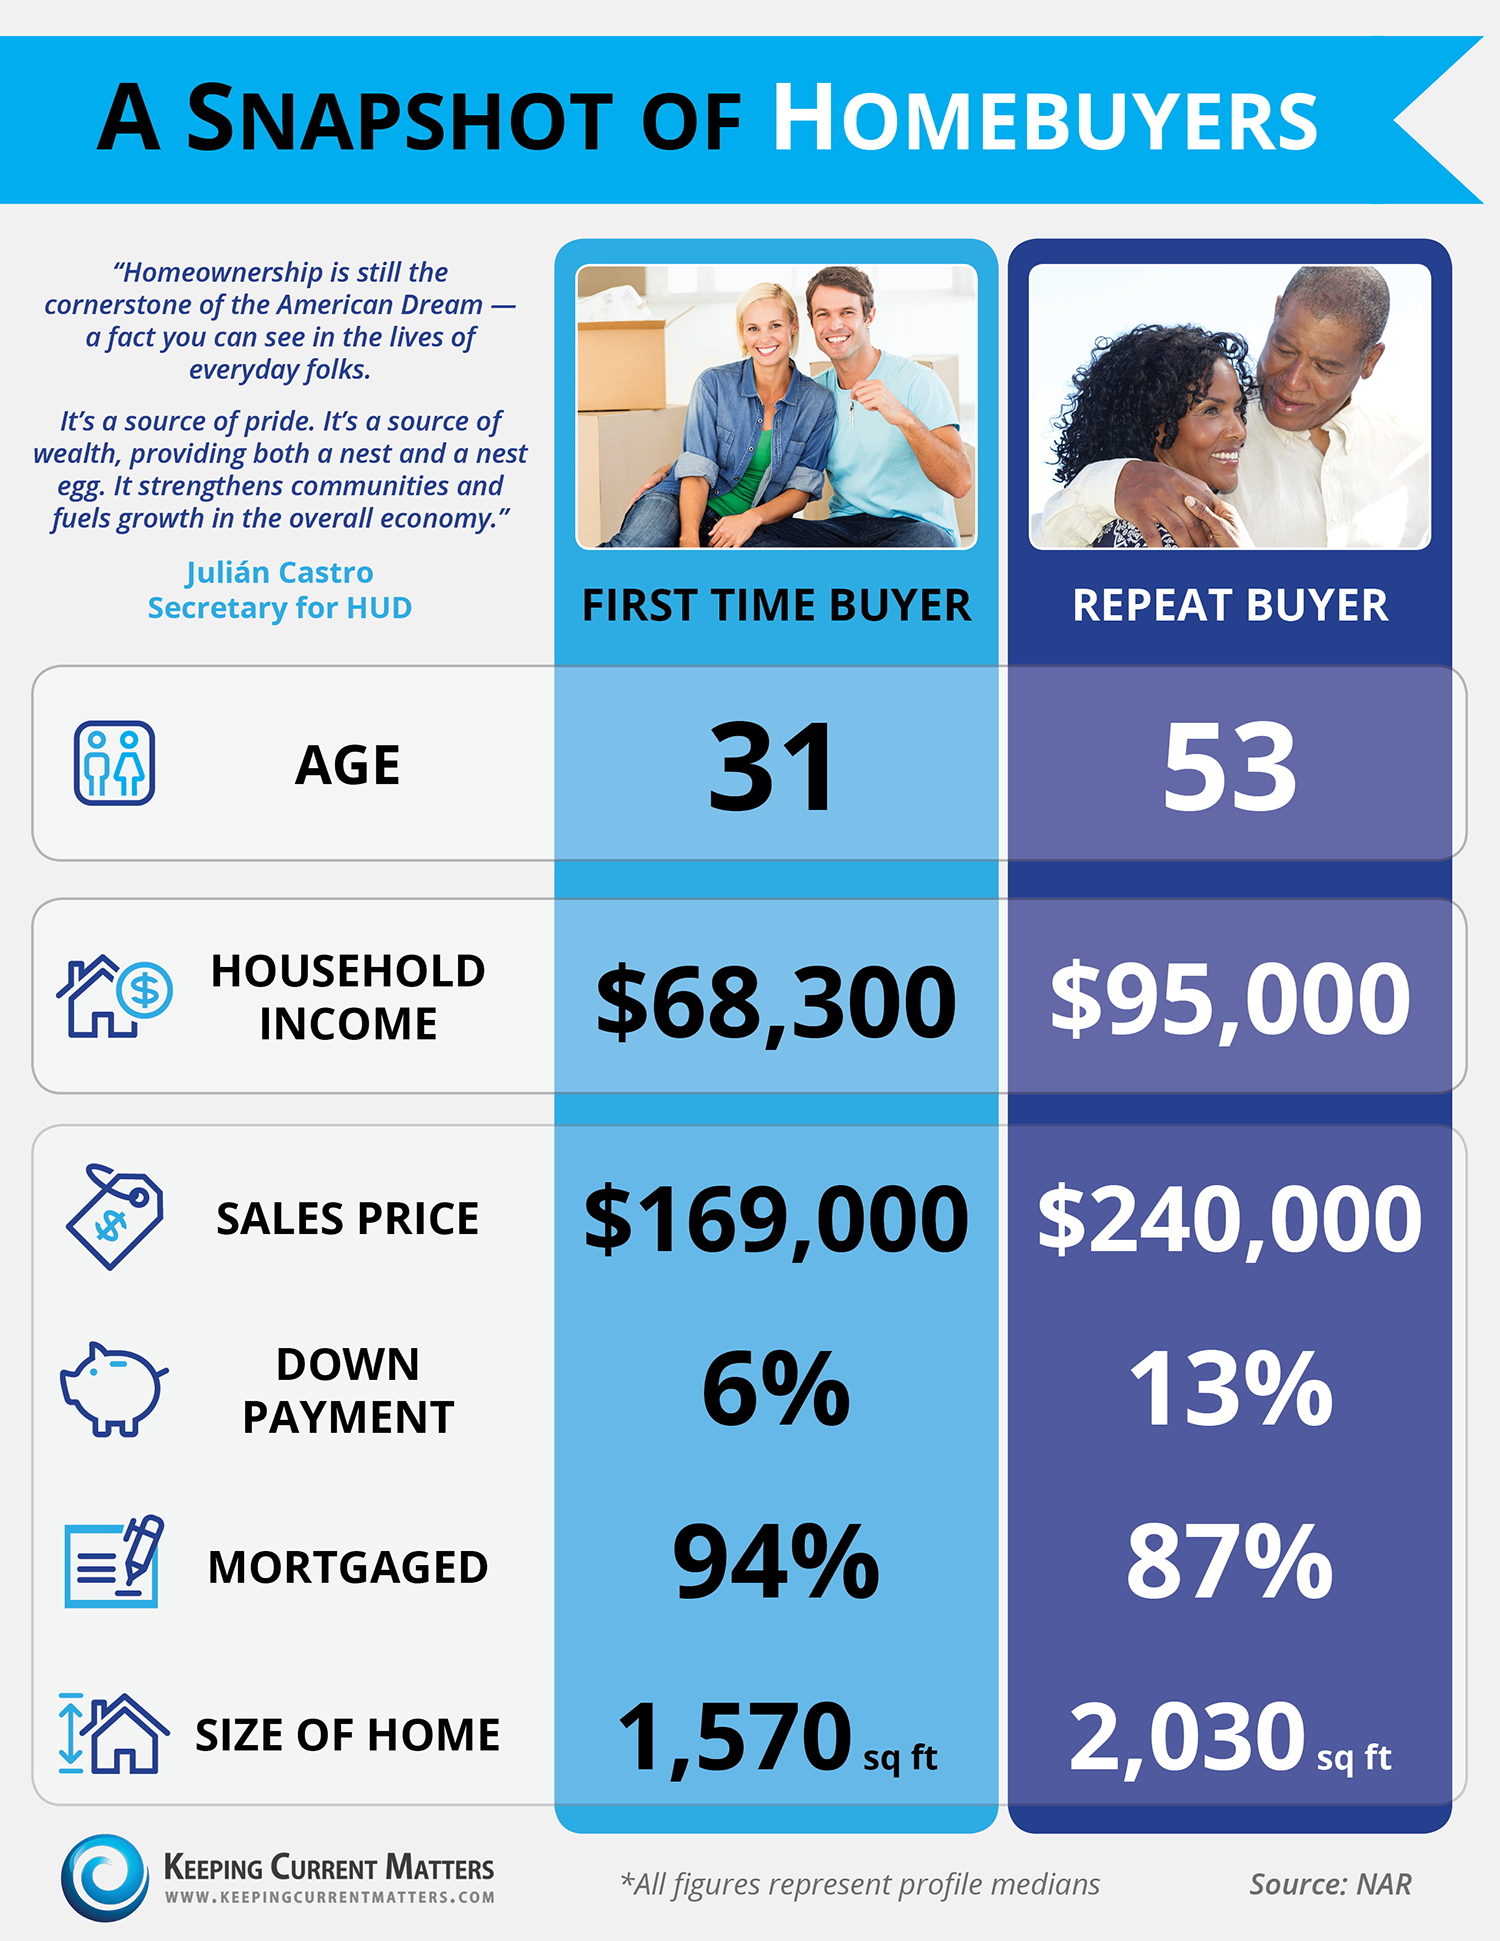 Buyer Snapshot: Repeat vs. First-Time Buyers